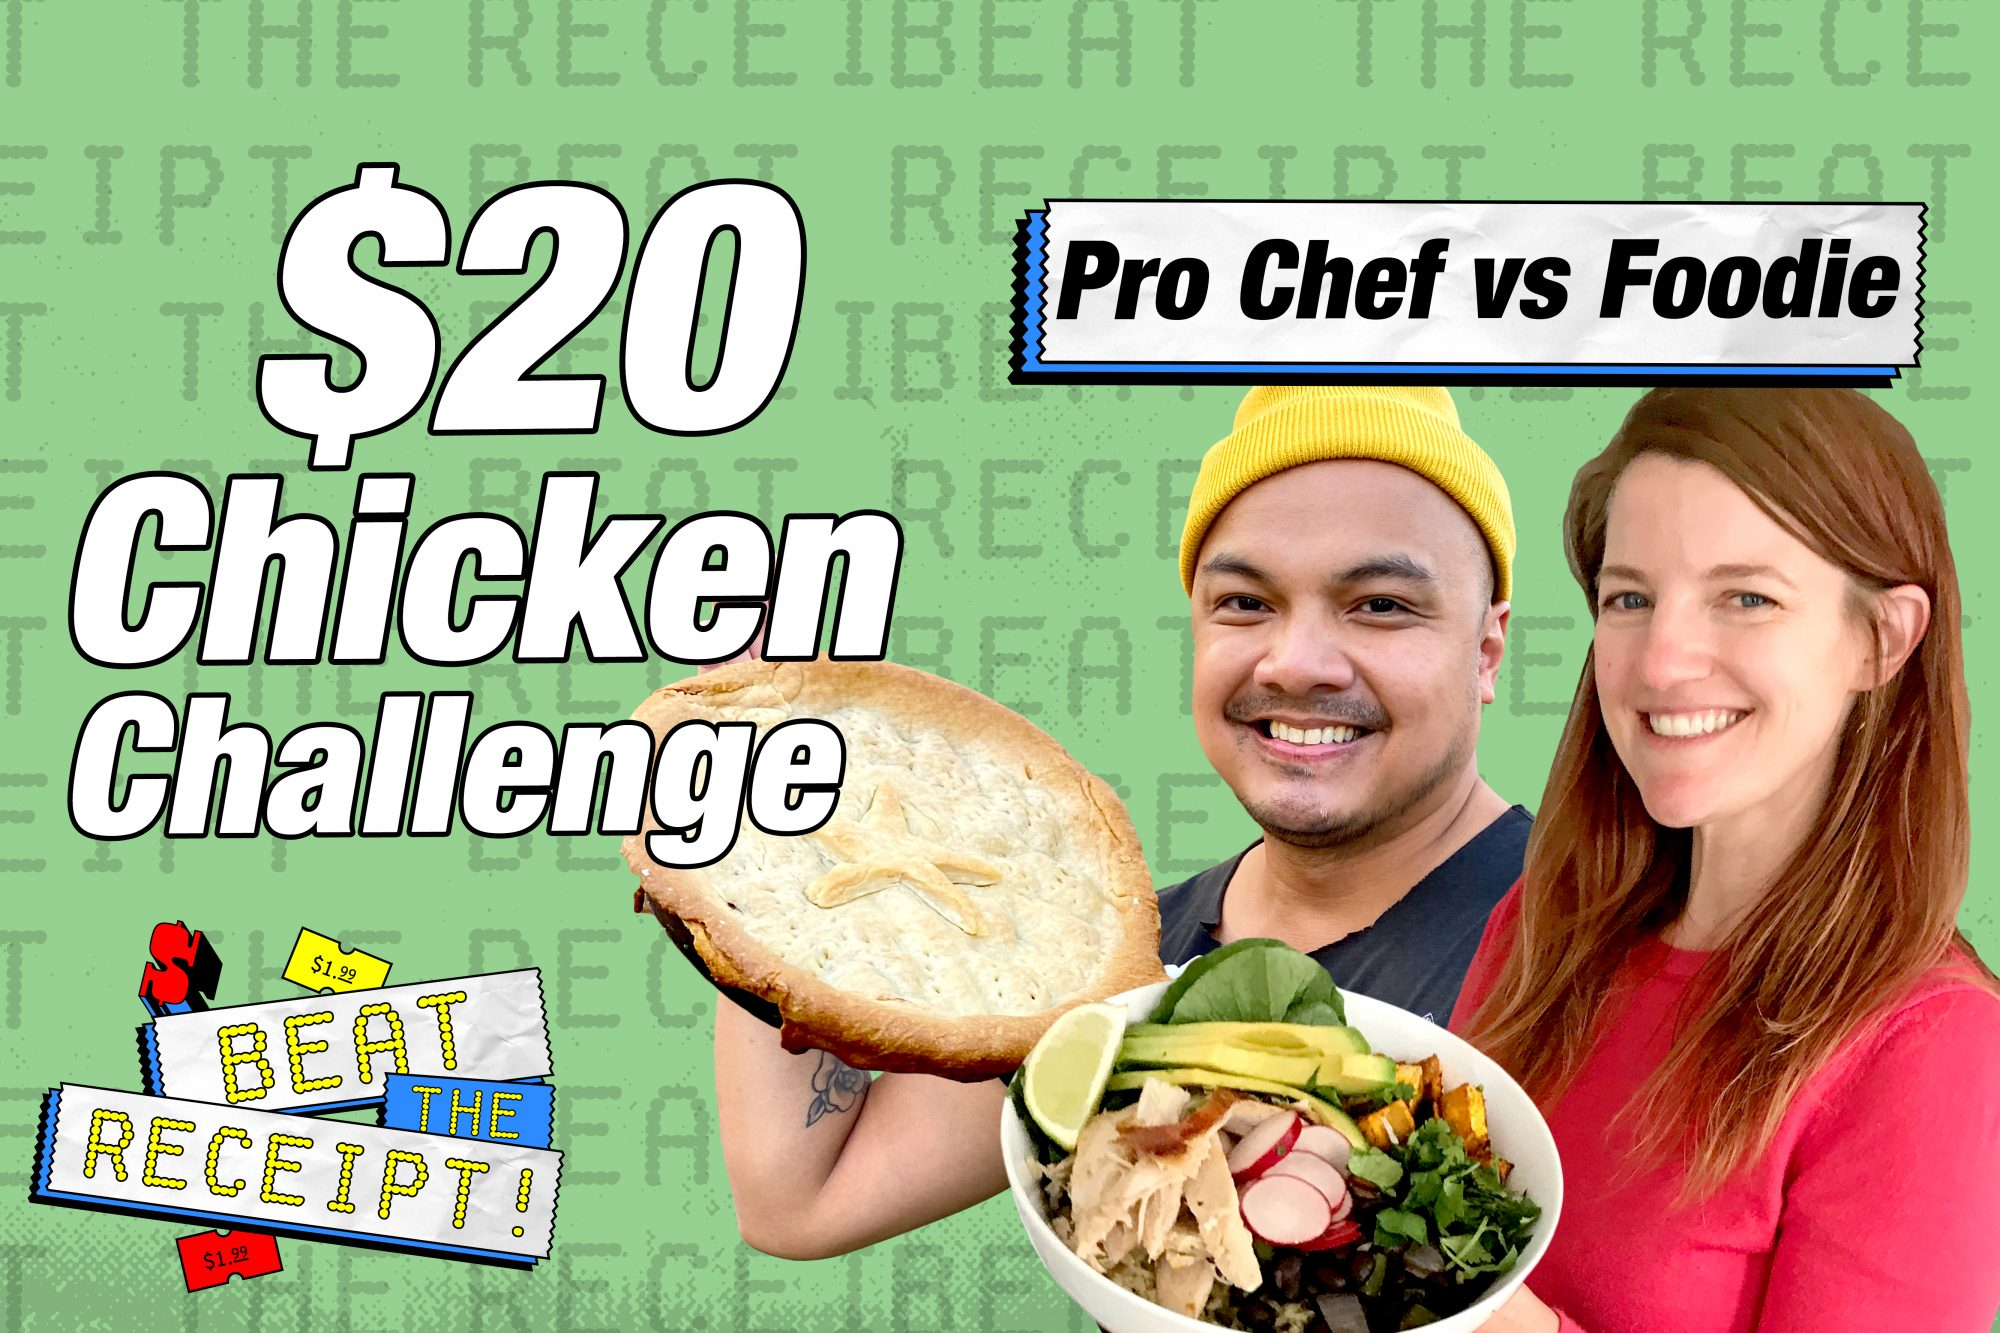 Beat the Receipt Chicken Challenge